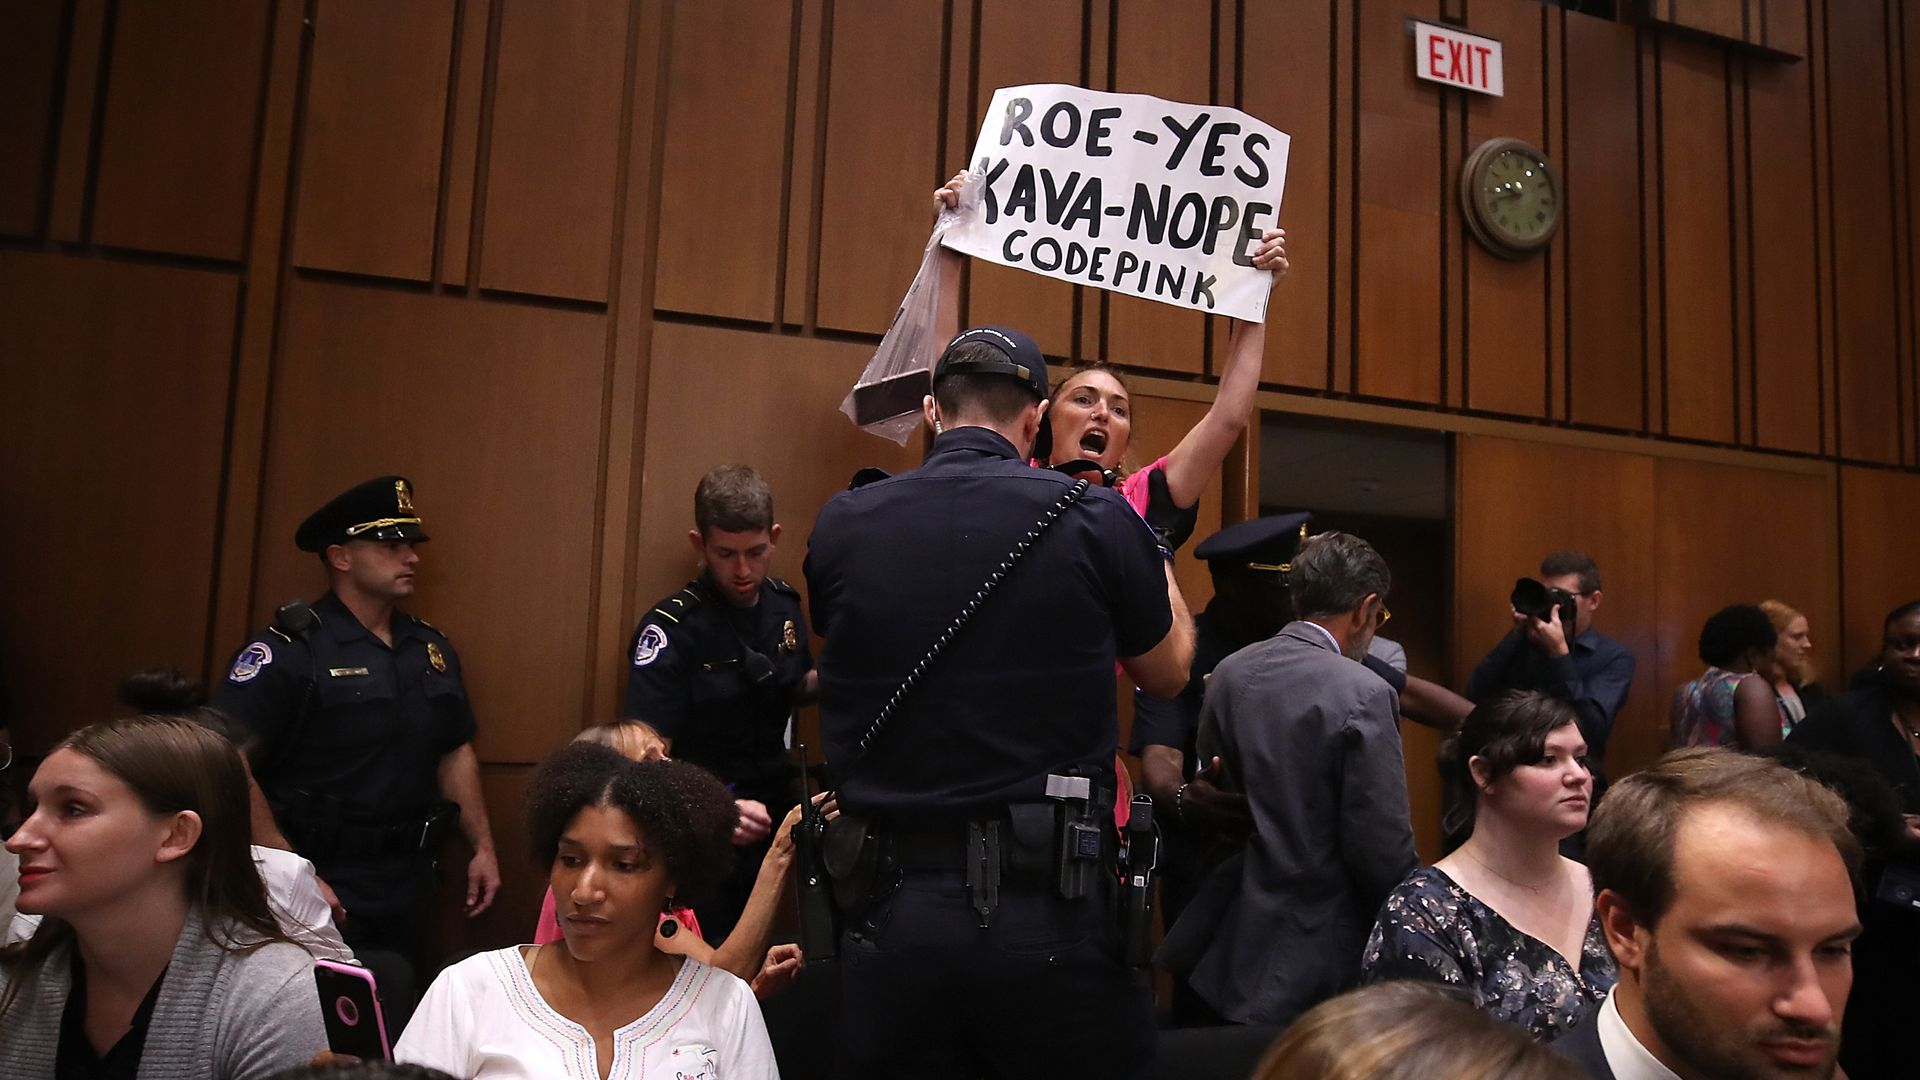 Protestor at Kavanaugh hearing